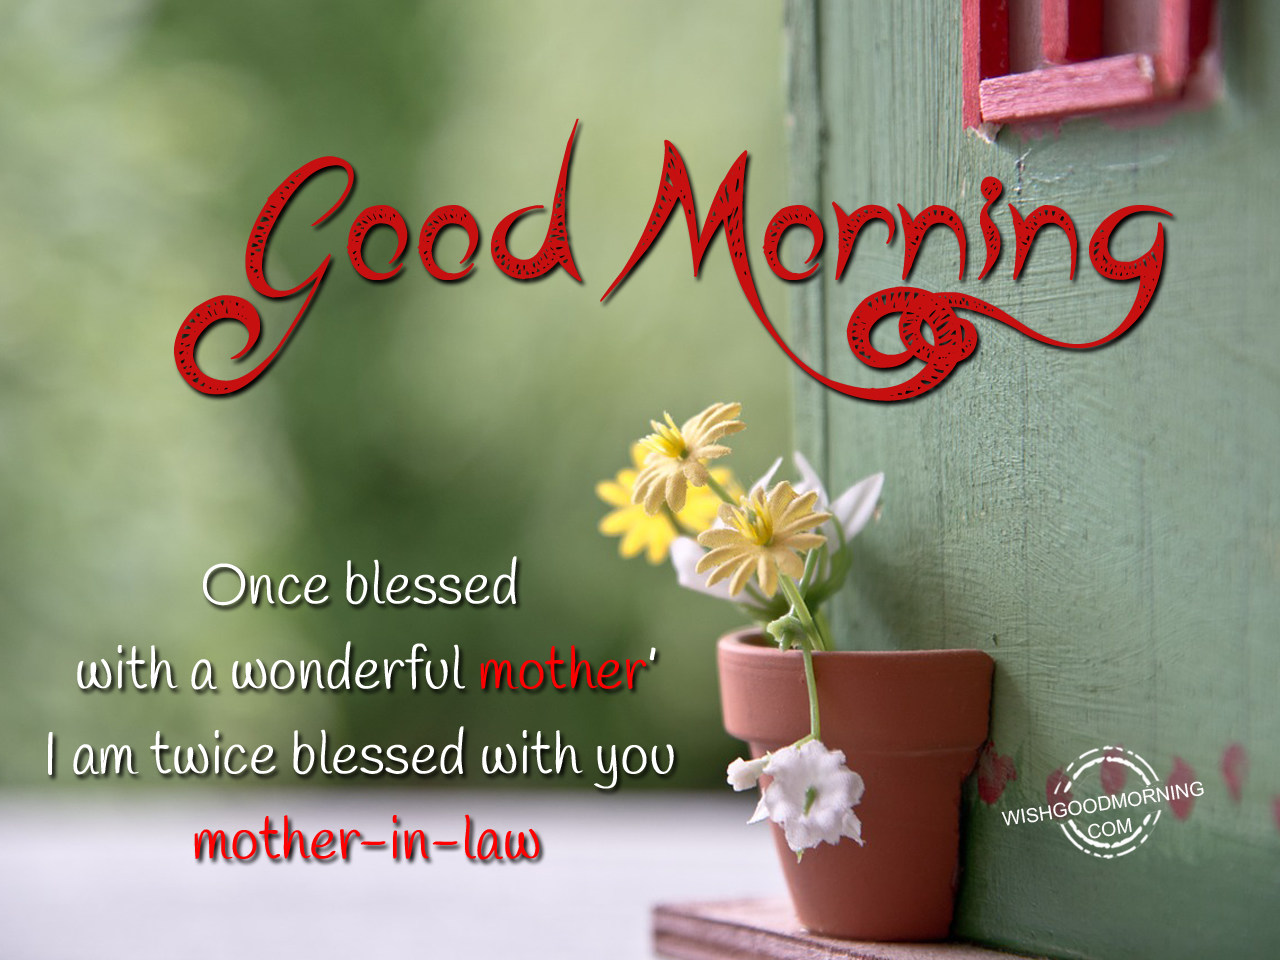 Good Morning Greetings For Mother In Law With Blessings Nicewishes